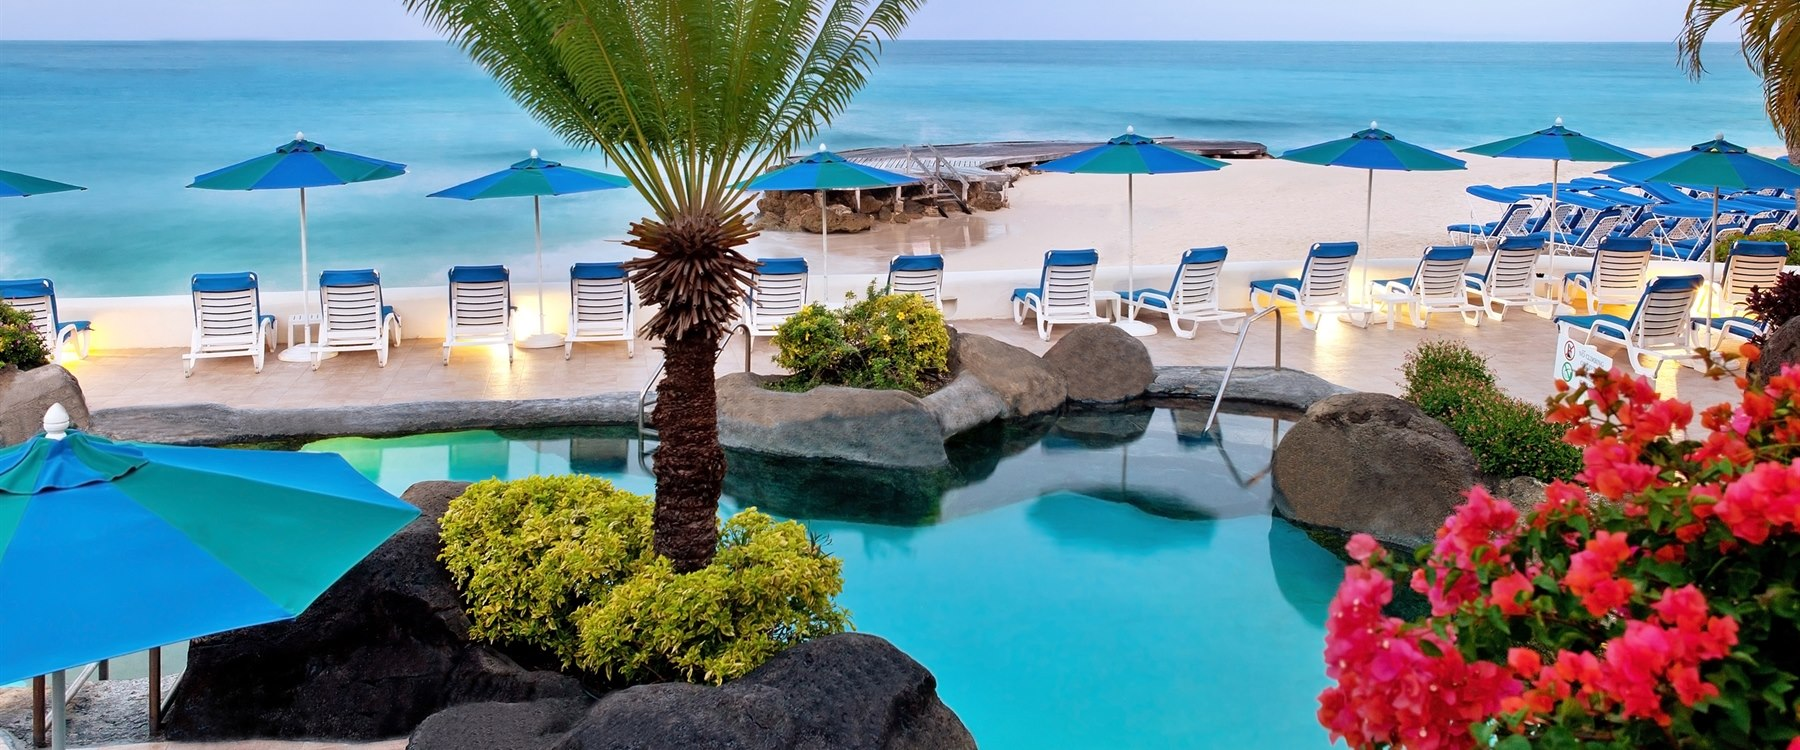 Sun loungers at Crystal Cove by Elegant Hotels, Barbados